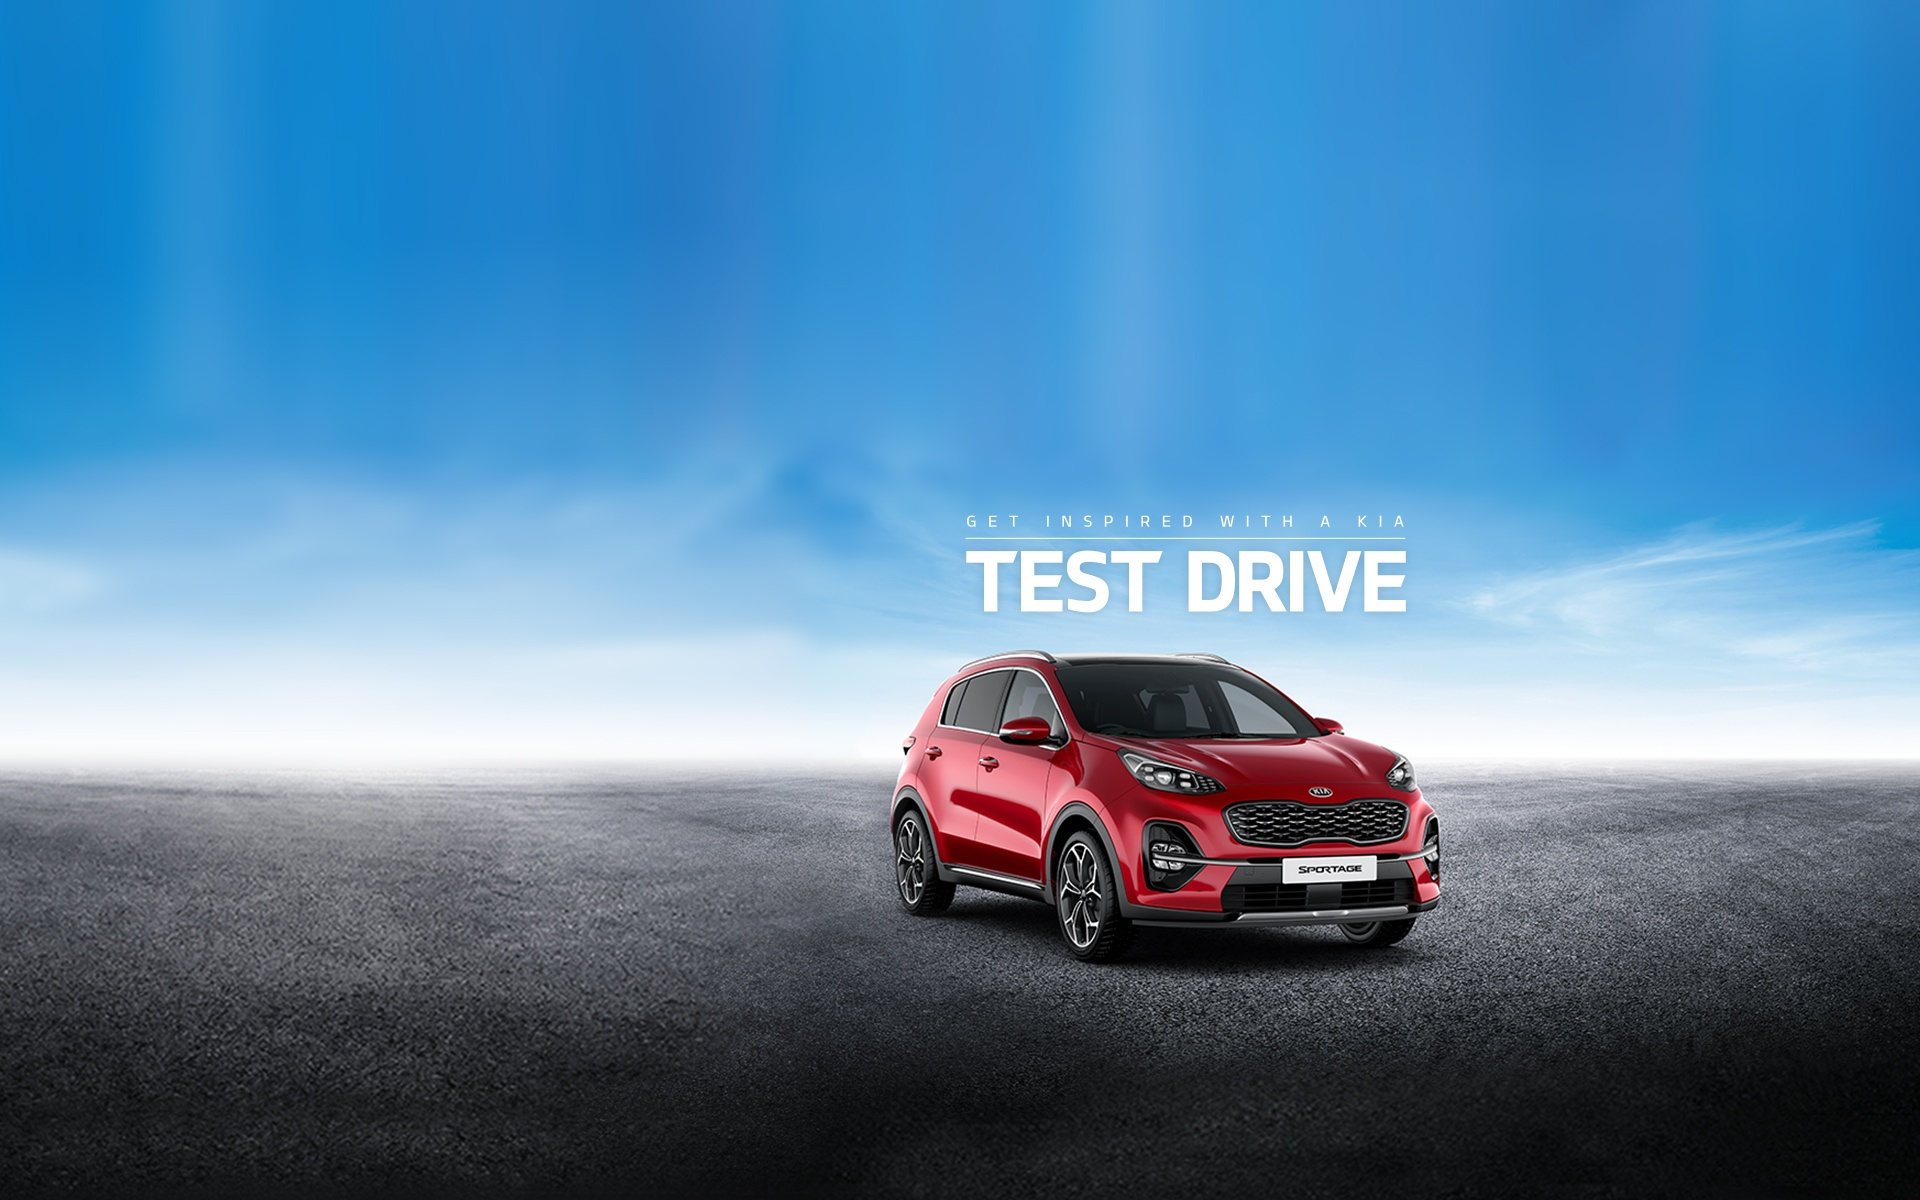 Sportage Test Drive Offer